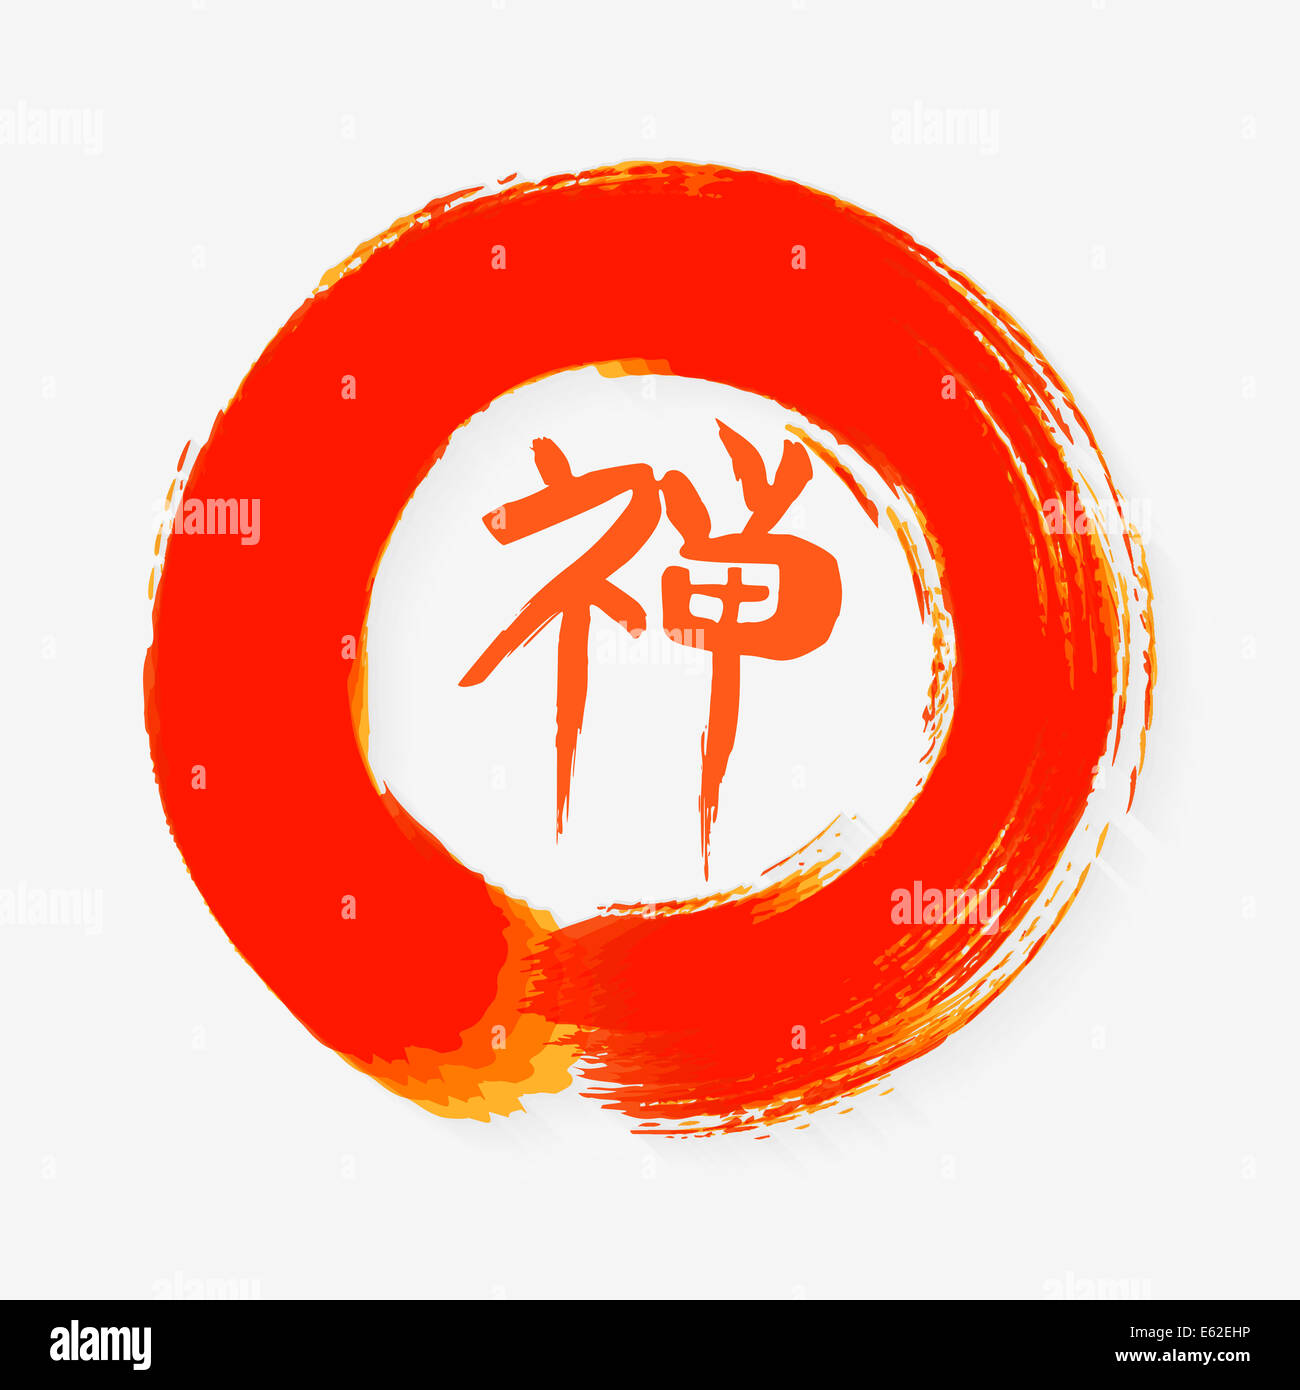 Enso zen circle illustration meditation symbol of buddhism with meditation symbol of buddhism with calligraphy eps10 vector file organized in layers for easy edi biocorpaavc